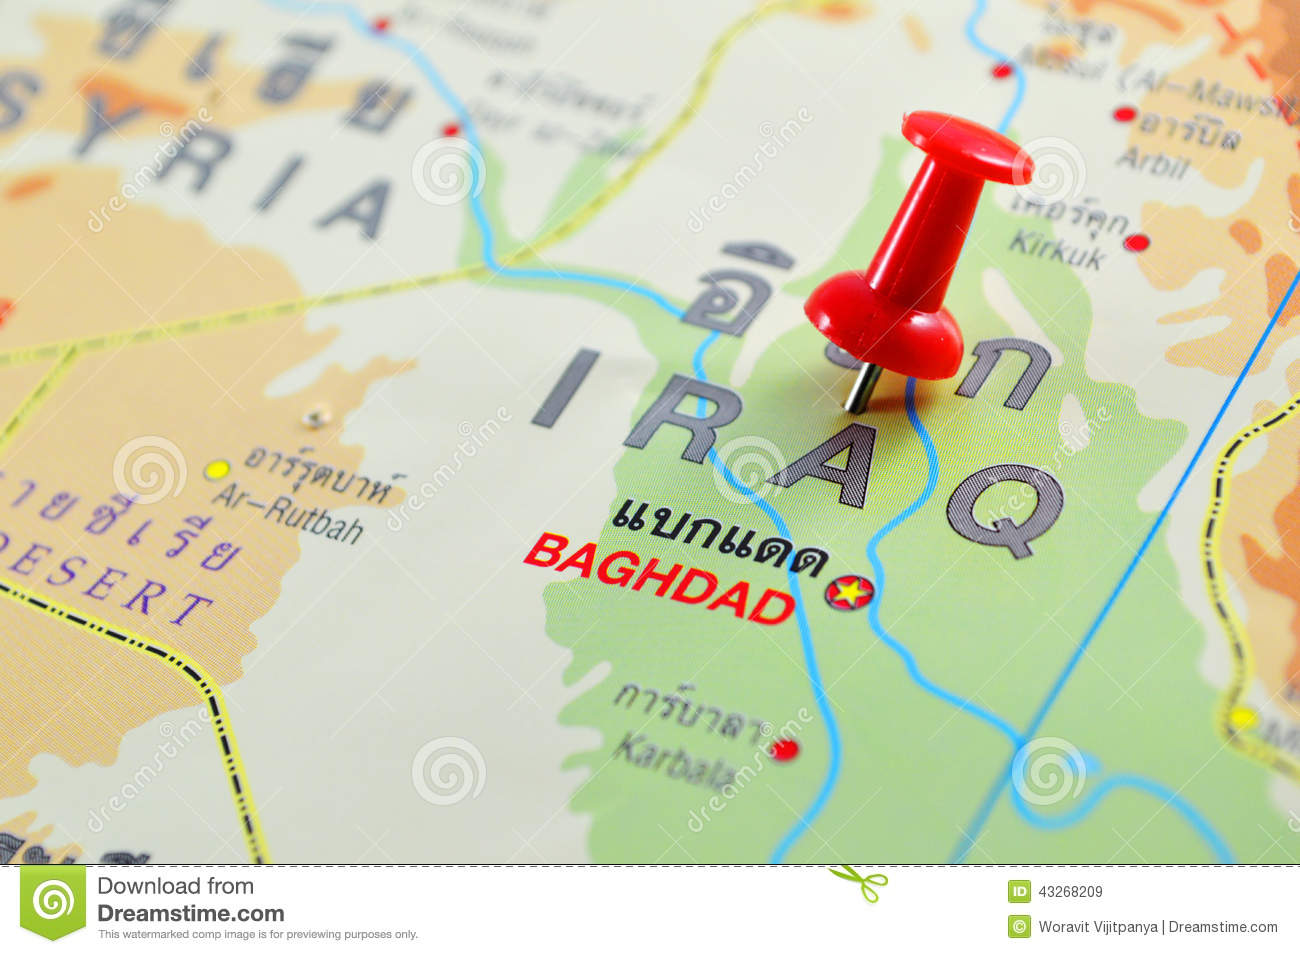 Iraq map stock image  Image of baghdad, location, petrol